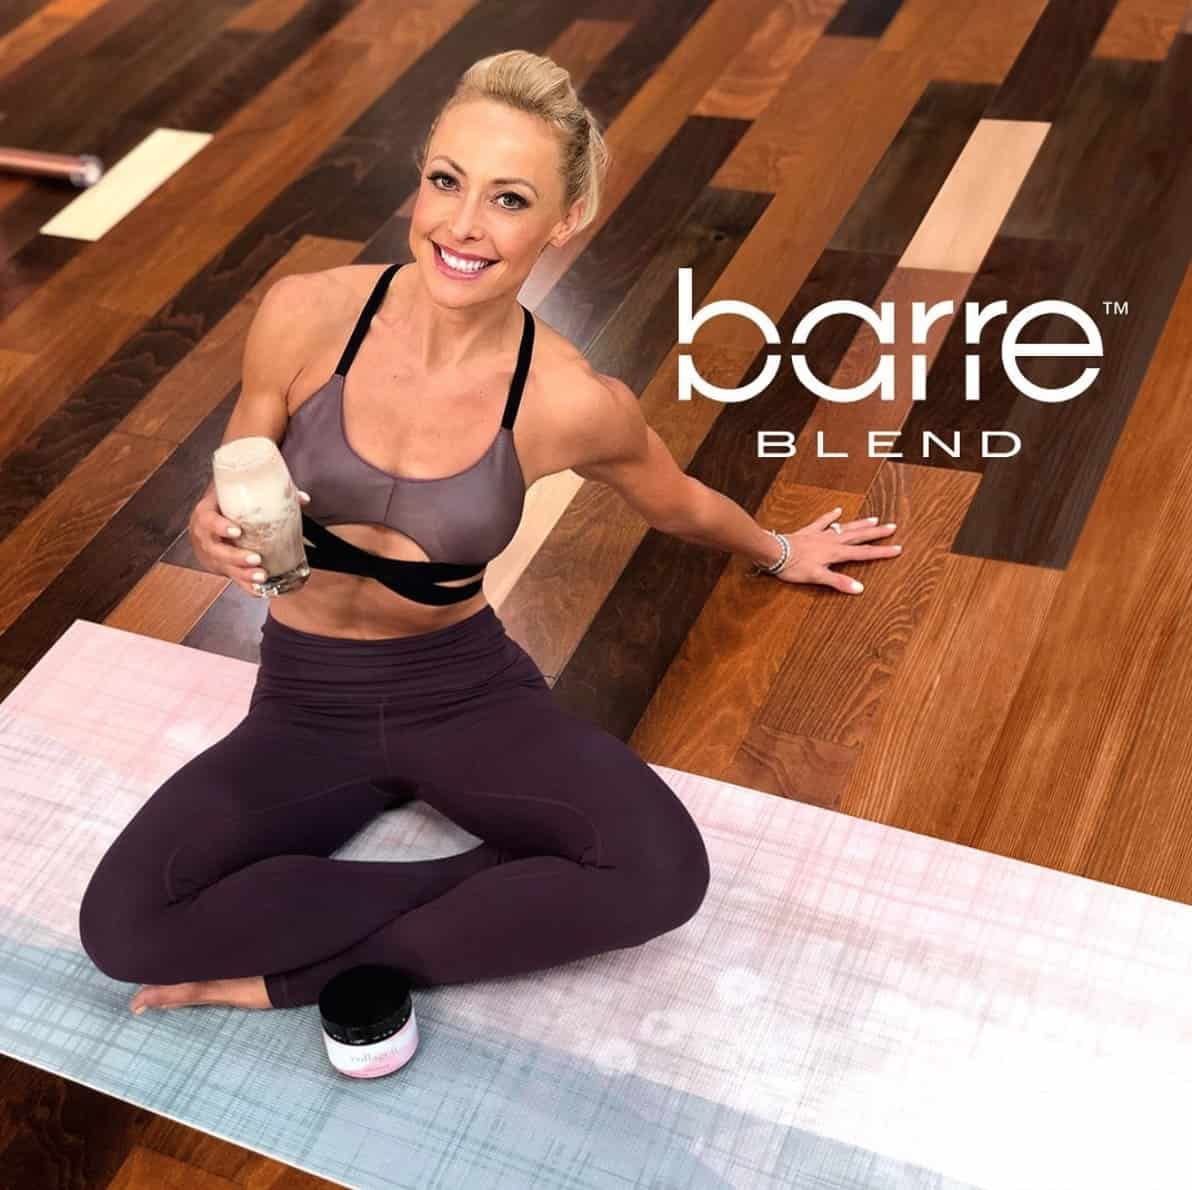 Elise from our Barre Blend Review